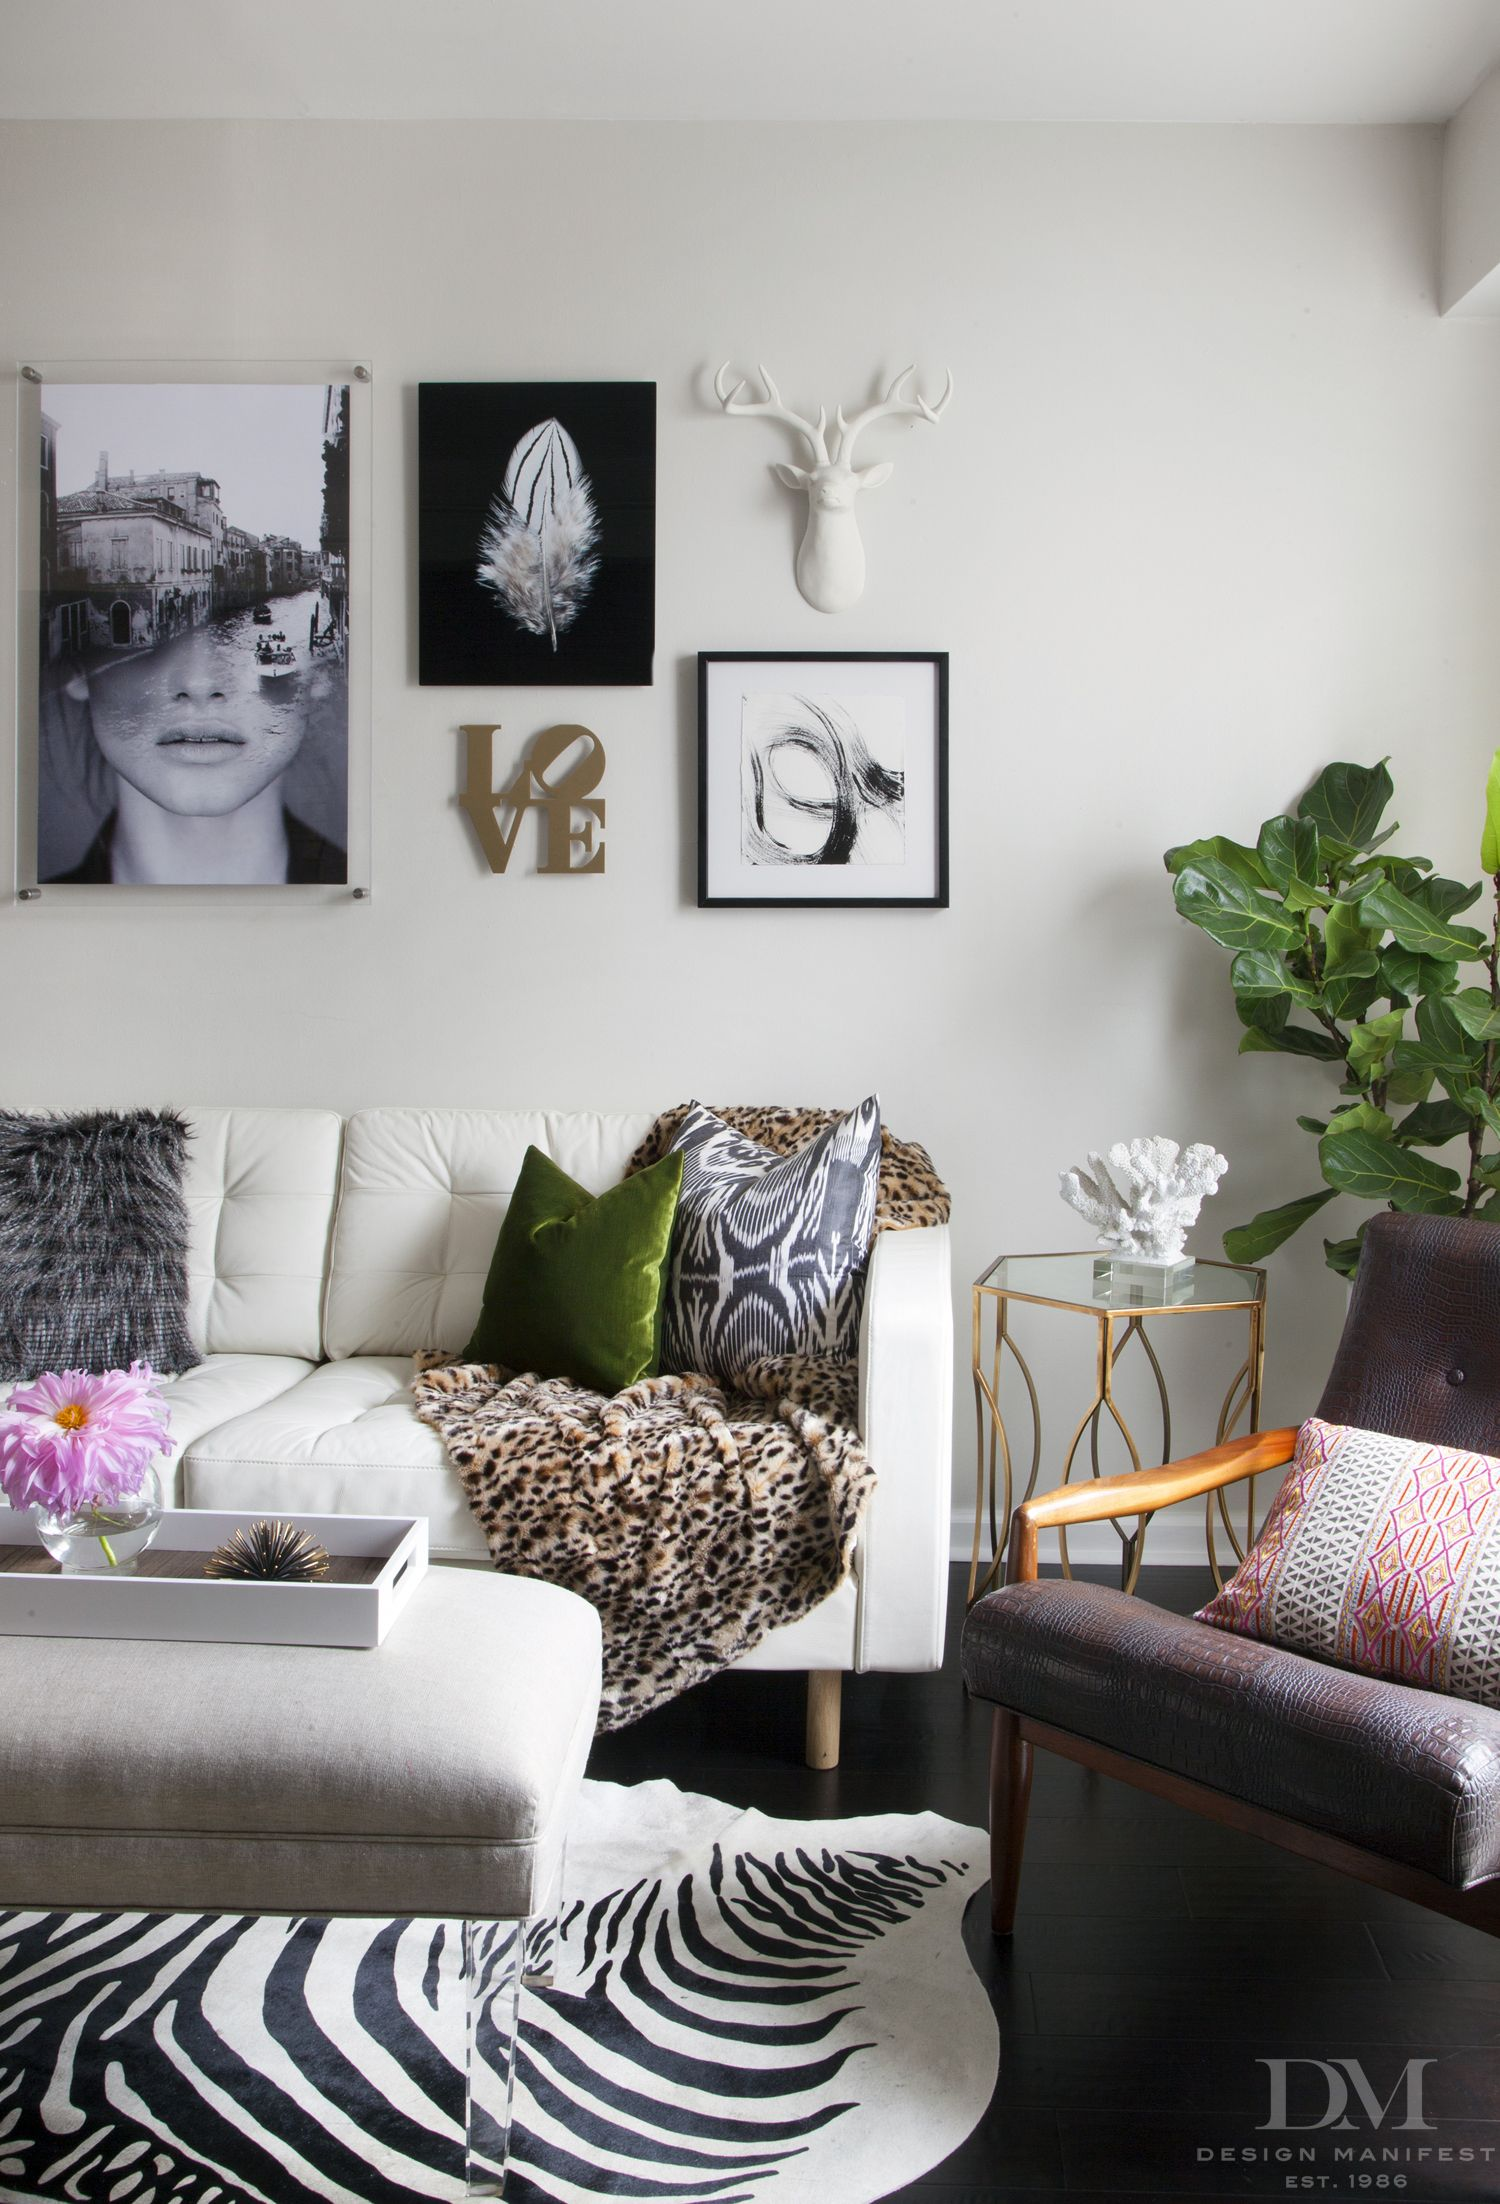 white leather chairs for living room wedding hire newcastle sofa with zebra art wall fiddle leaf fig lucite ottoman danish chair